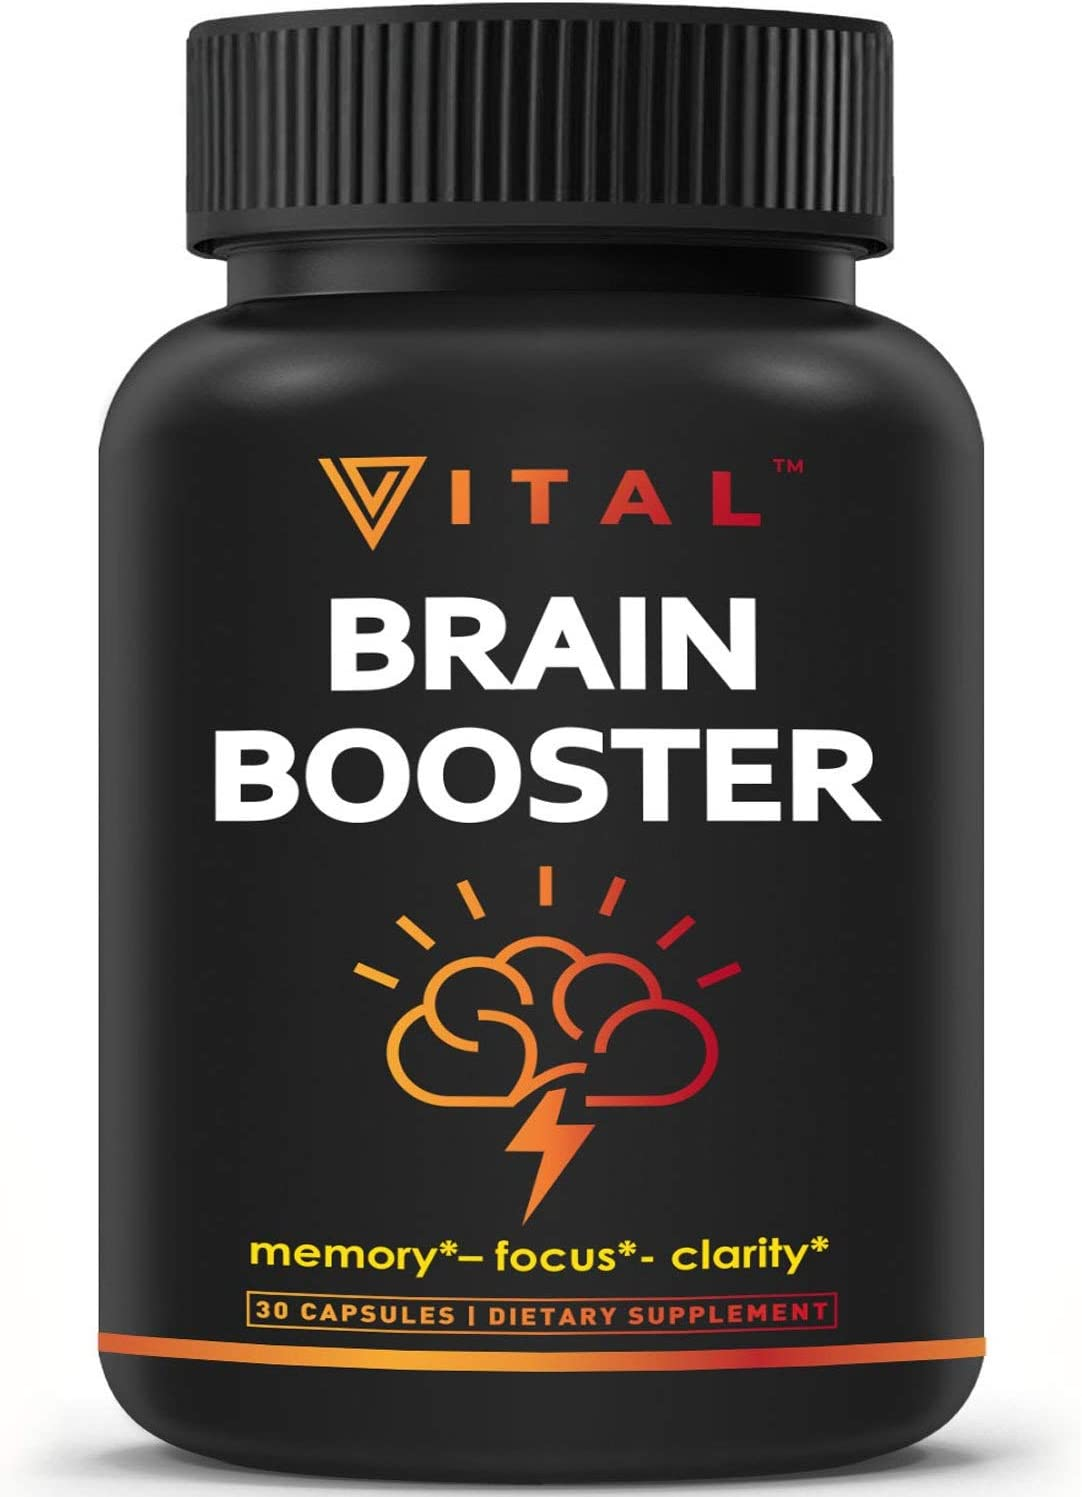 Brain Supplement Nootropics Booster – Enhance Focus, Boost Concentration, Improve Memory Clarity For Men Women, Ginkgo Biloba, DMAE, Mind Enhancement, IQ Neuro Energy, Vitamin B12, Bacopa Monnieri